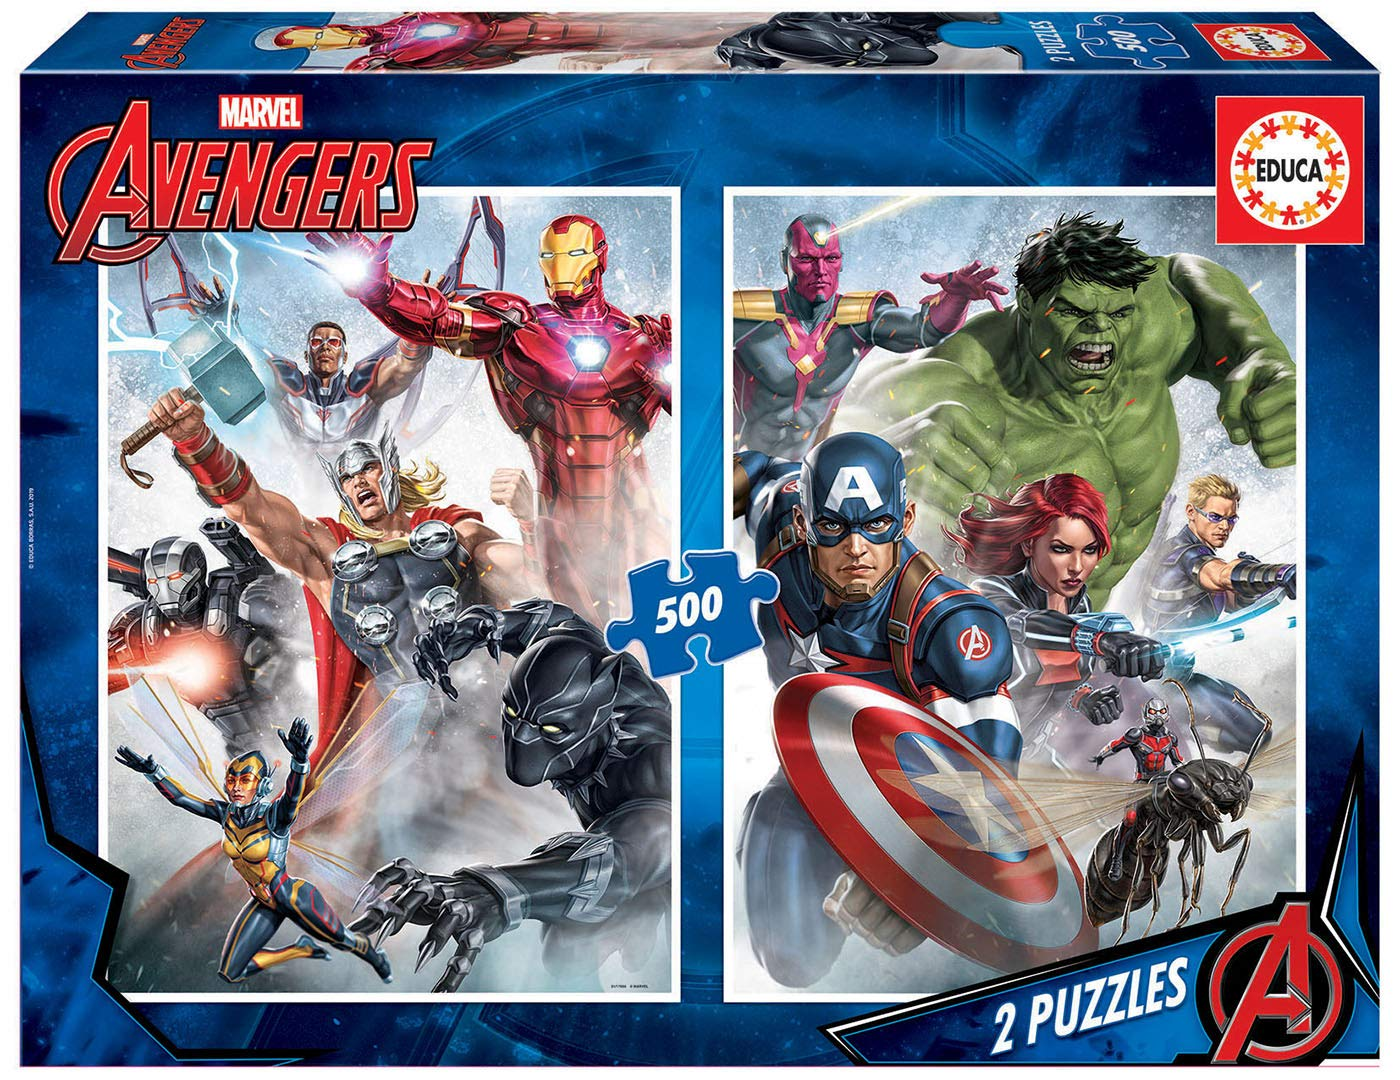 2-puzzles-marvel-avengers